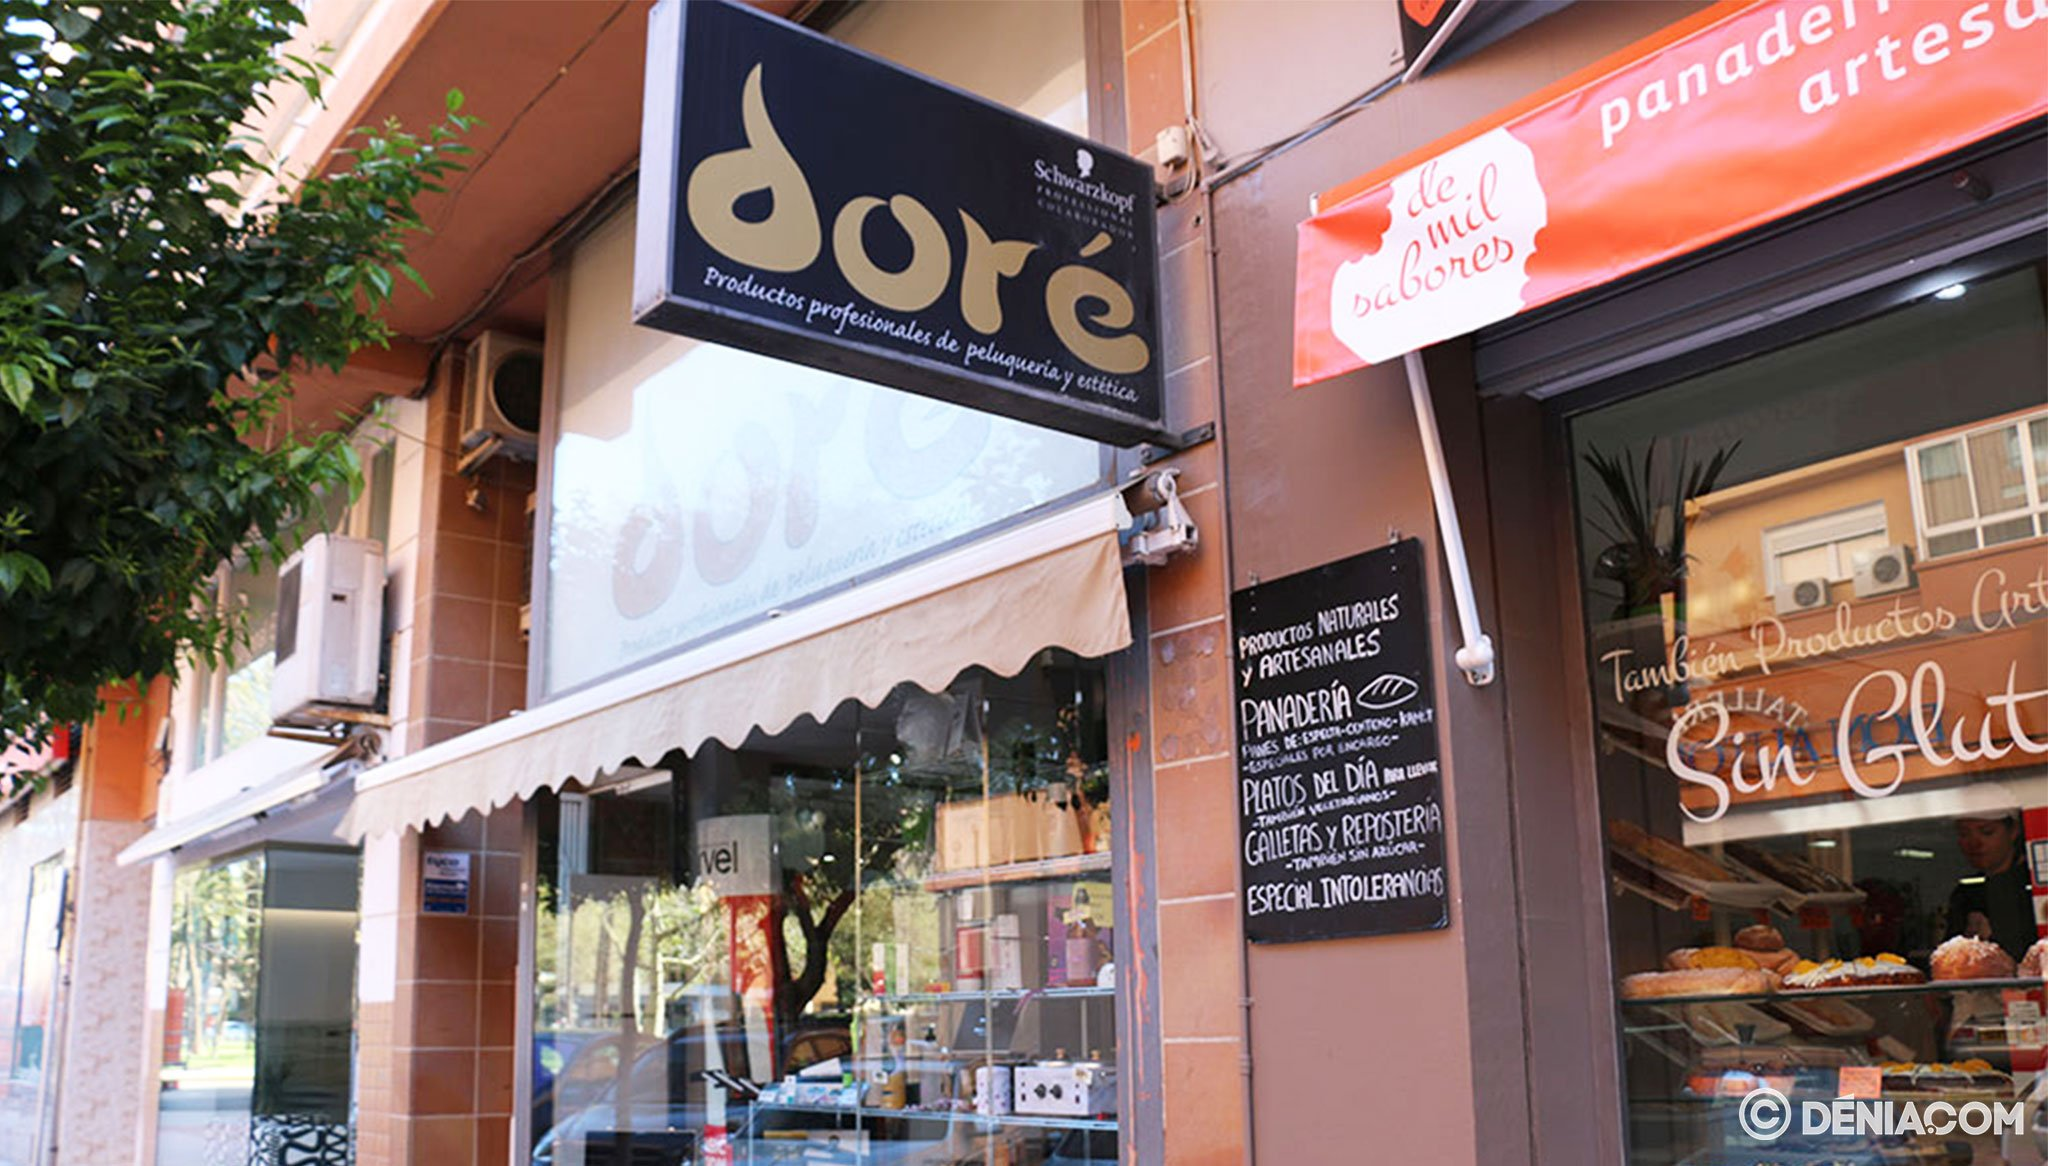 Discounts in Doré, specialists in professional hairdressing and aesthetic products in Dénia